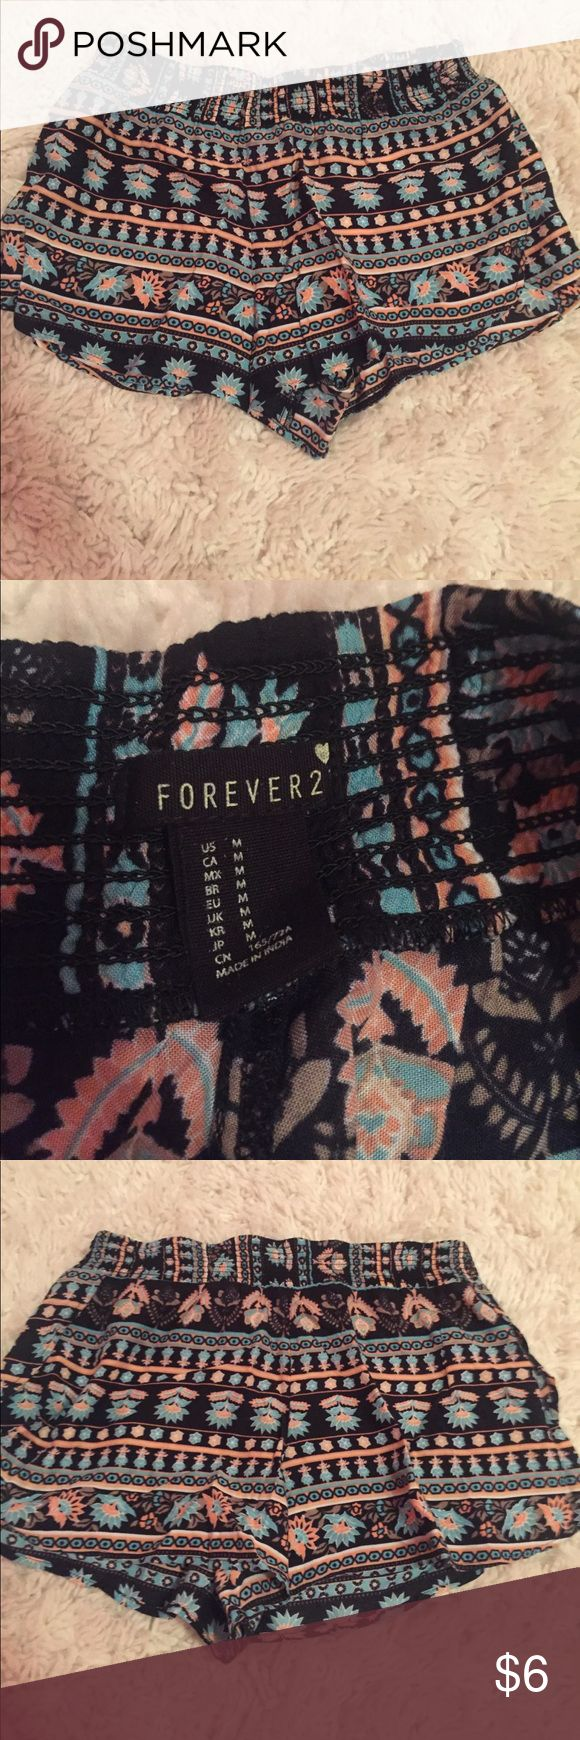 Forever 21 Flowy Aztec print shorts These shorts are a size medium and have never been worn. Thank you for checking out my closet! 💓 Forever 21 Shorts